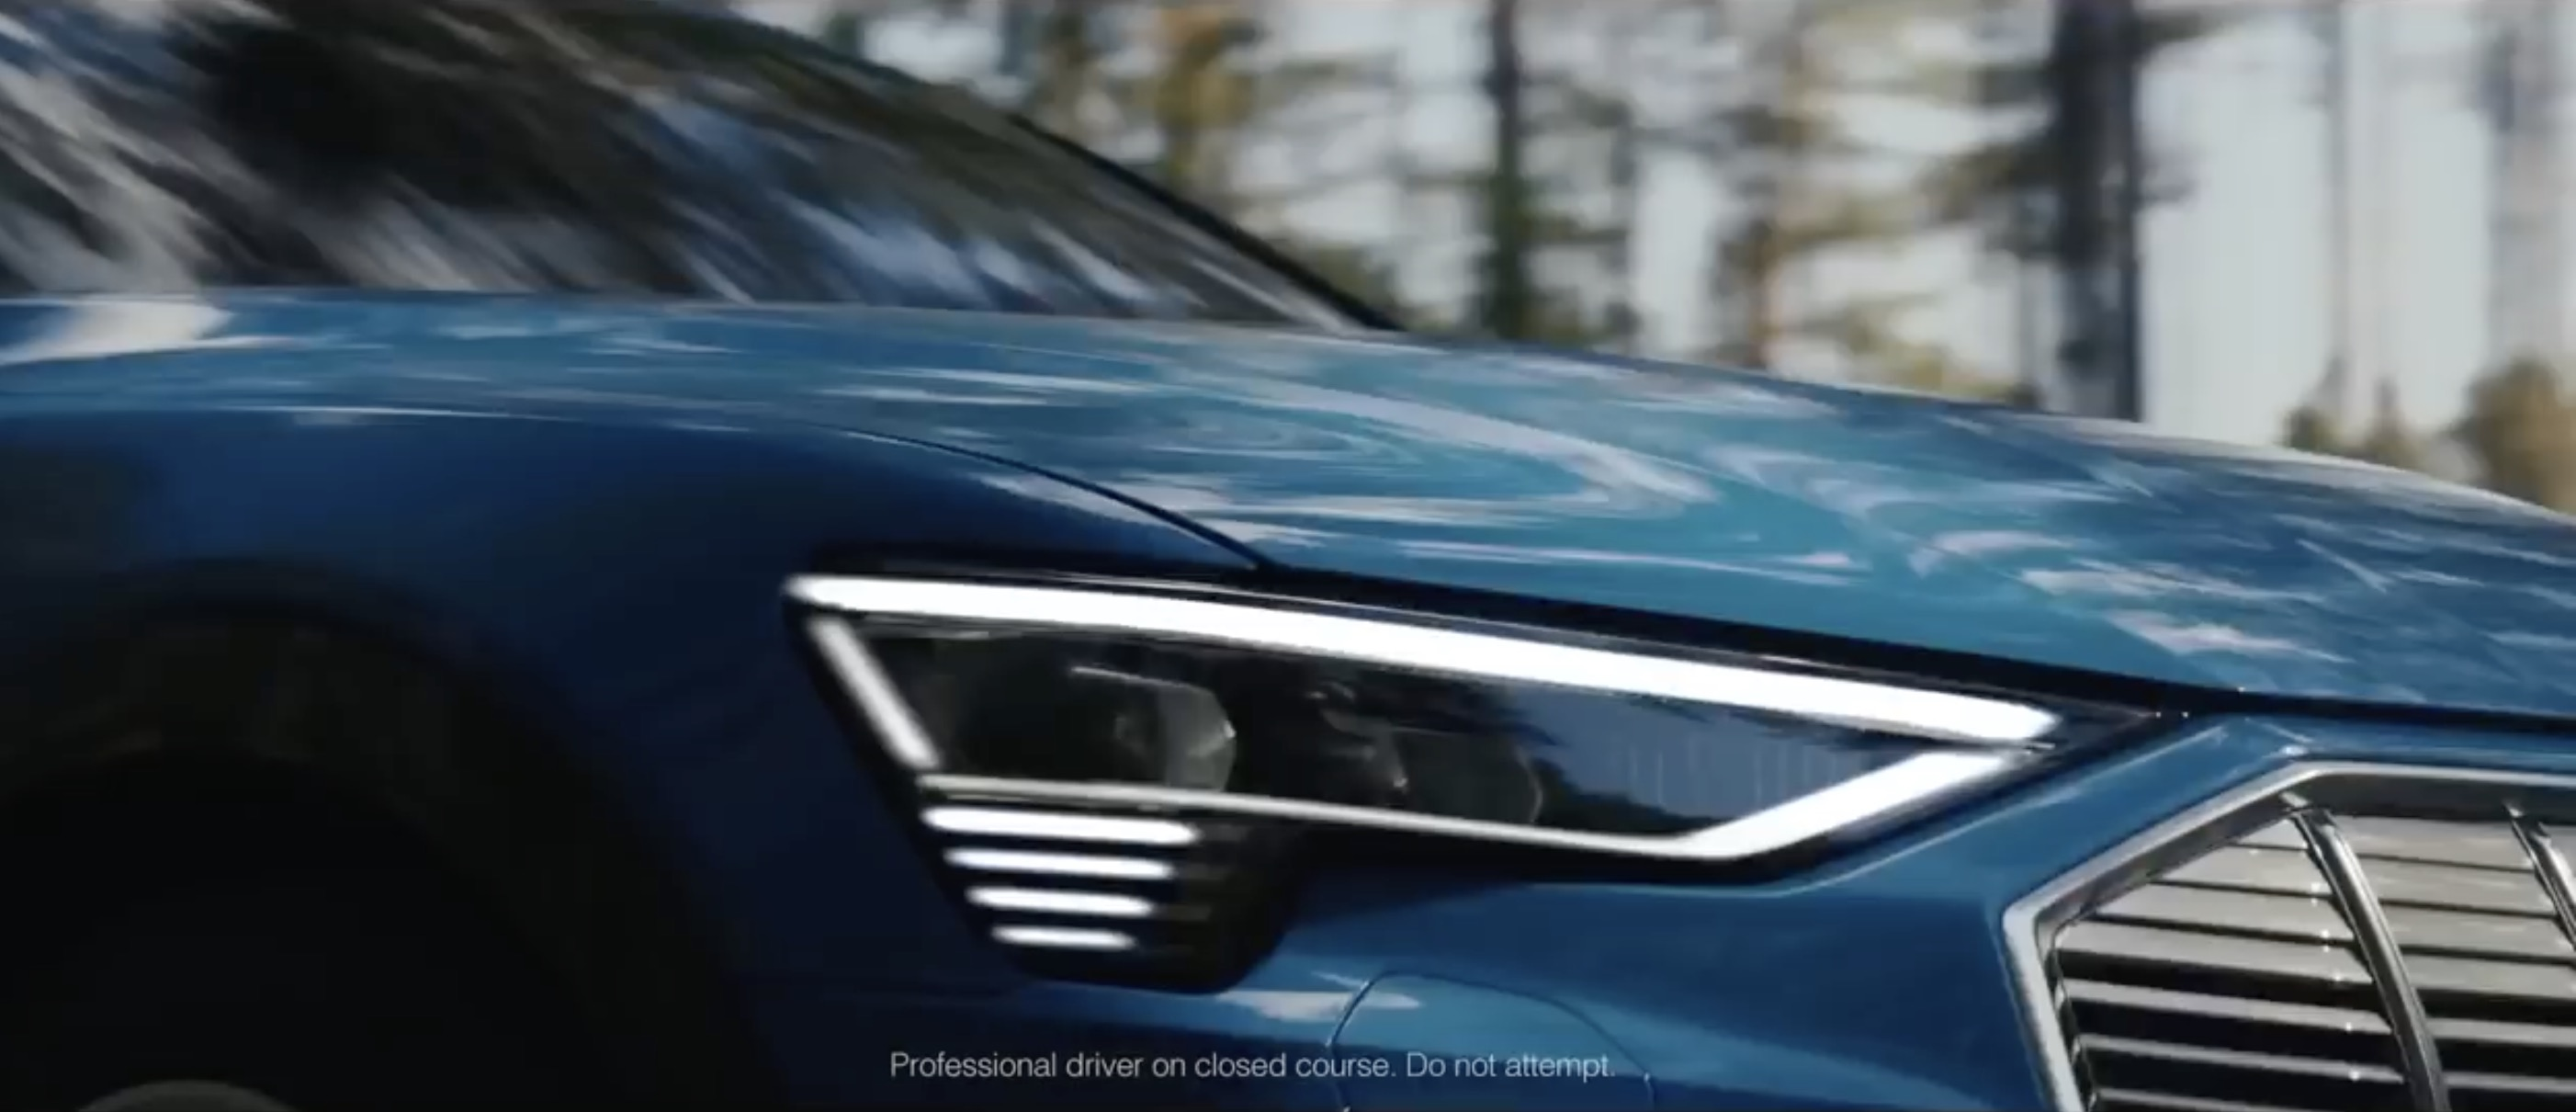 Audi already advertising e-tron electric SUV ahead of the launch event